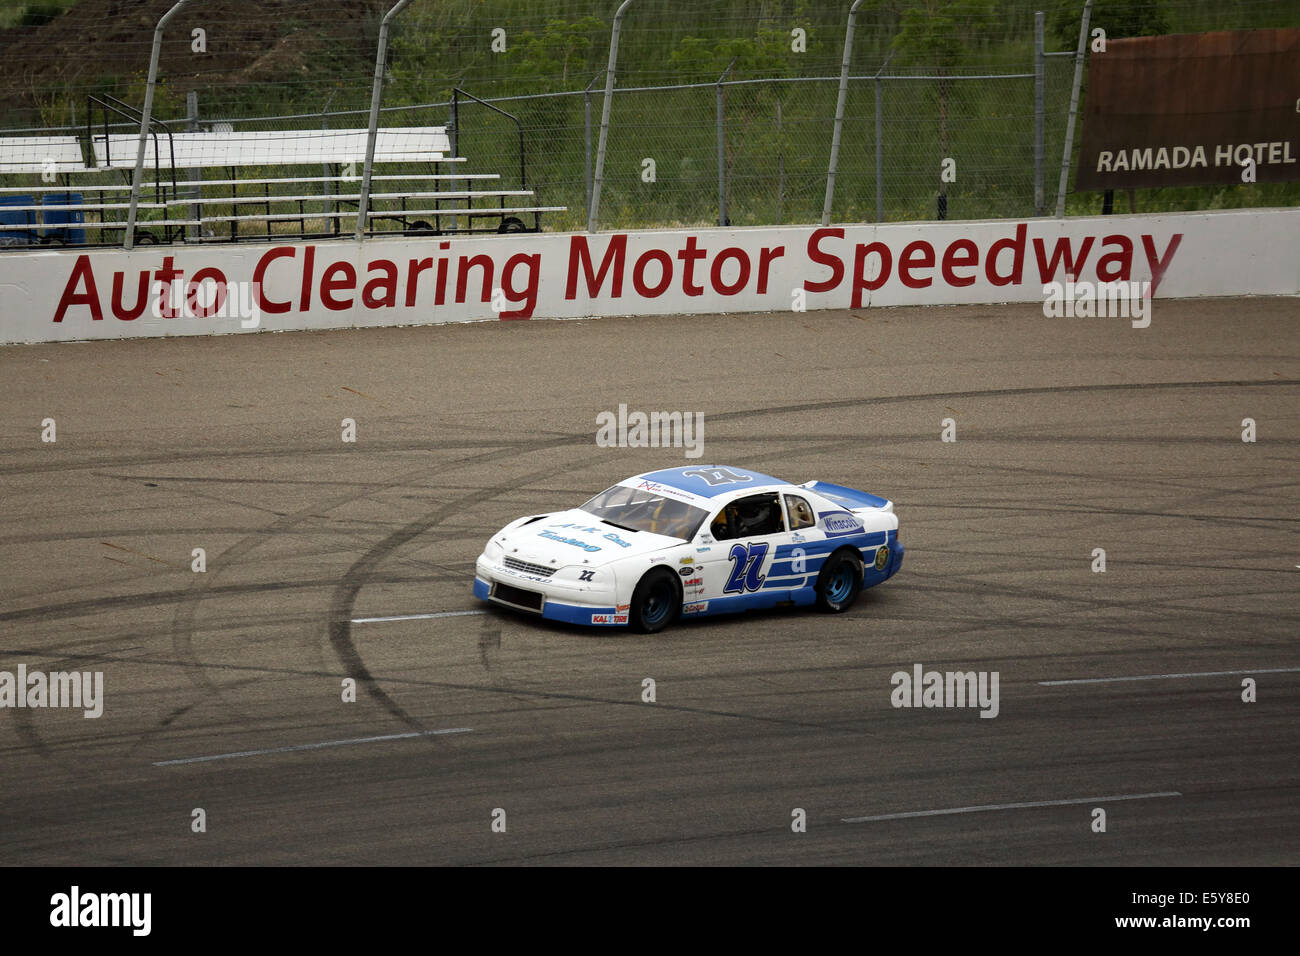 Motor racing at the Auto Clearing Motor Speedway racing circuit in Saskatoon, Saskatchewan, Canada. - Stock Image